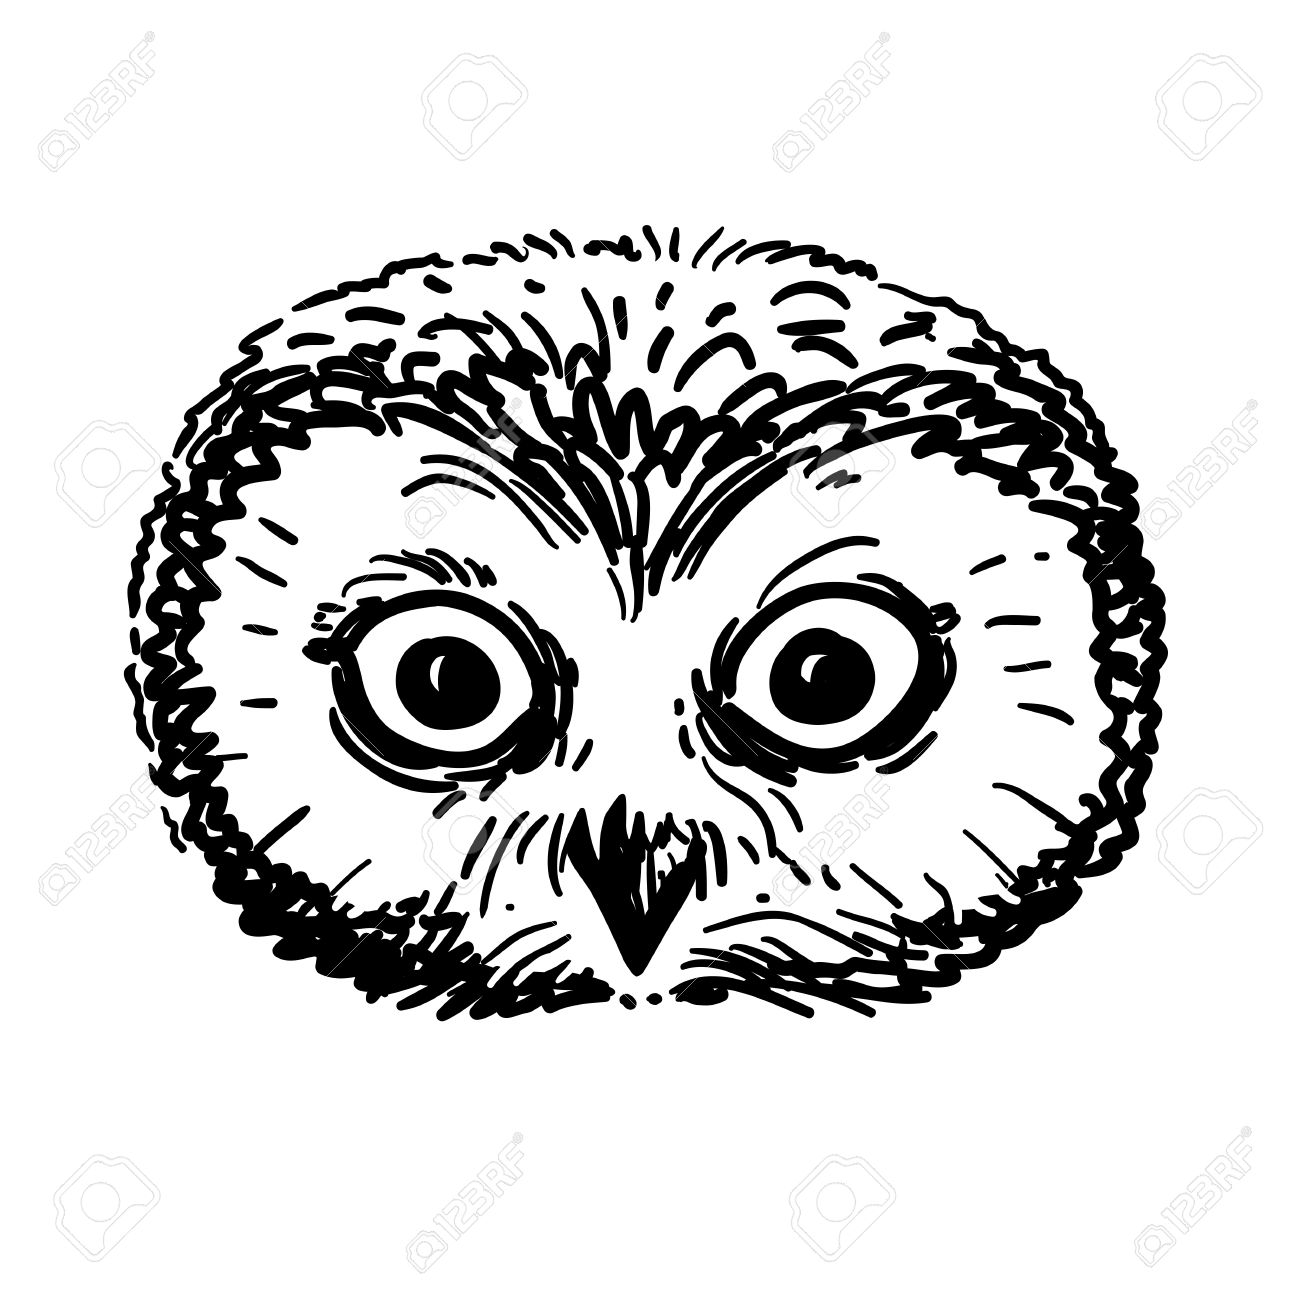 Vector Hand Drawn Black And White Illustration Of An Owl Portrait